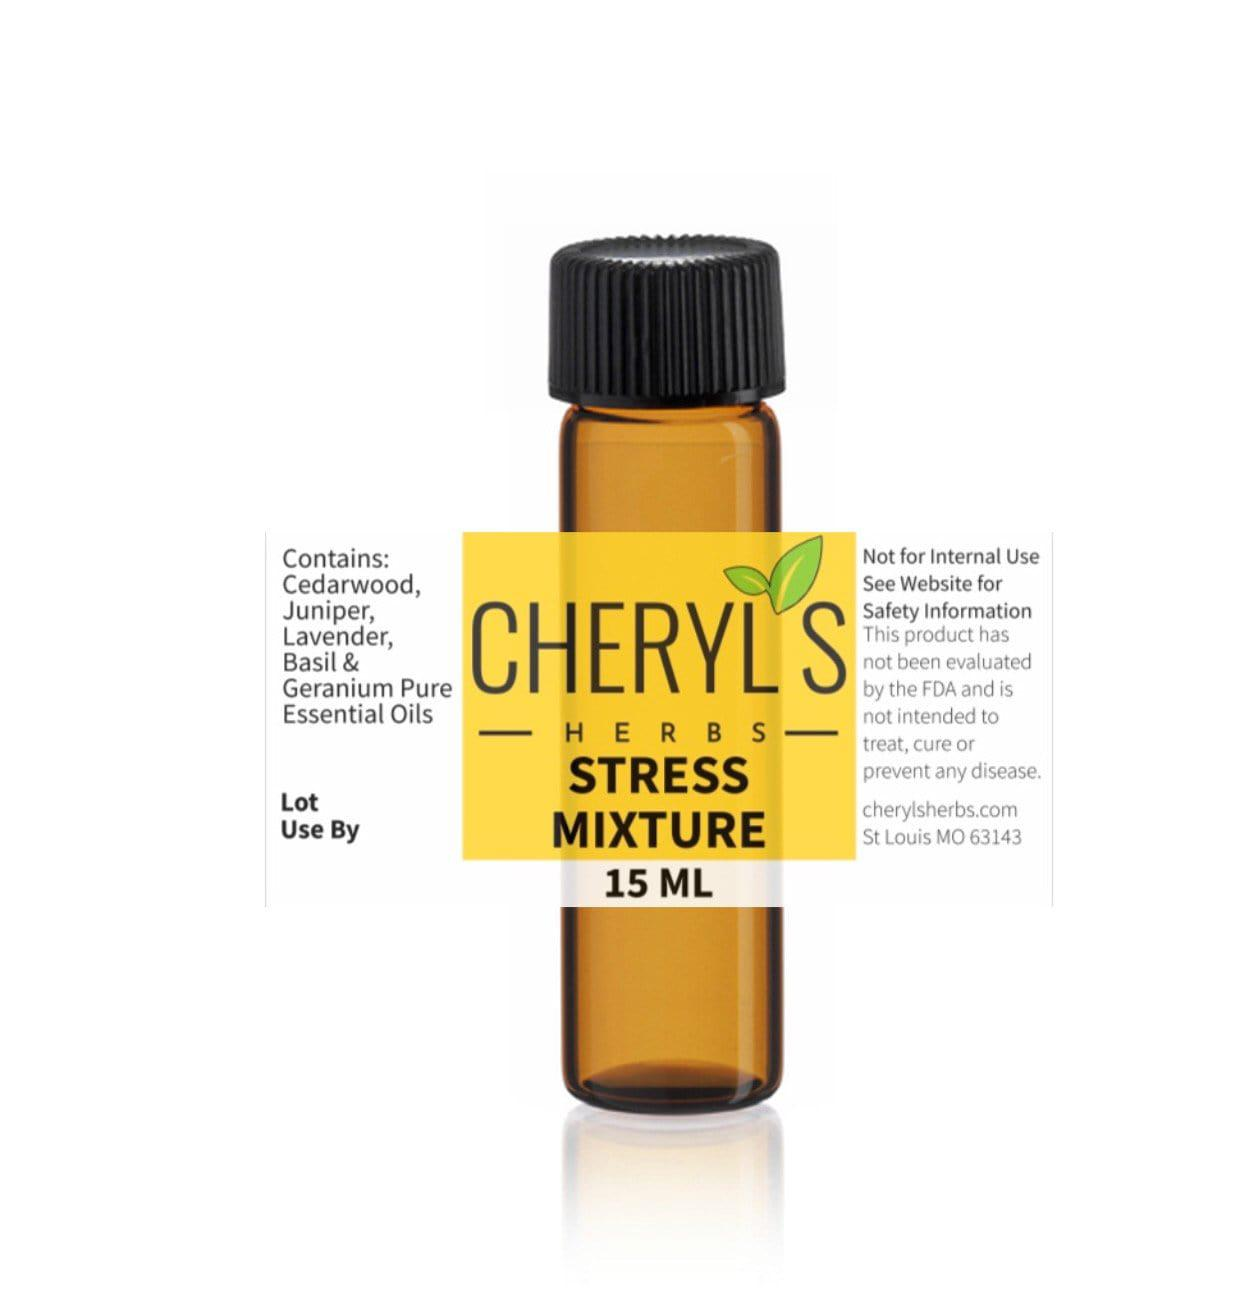 STRESS MIXTURE - Cheryls Herbs